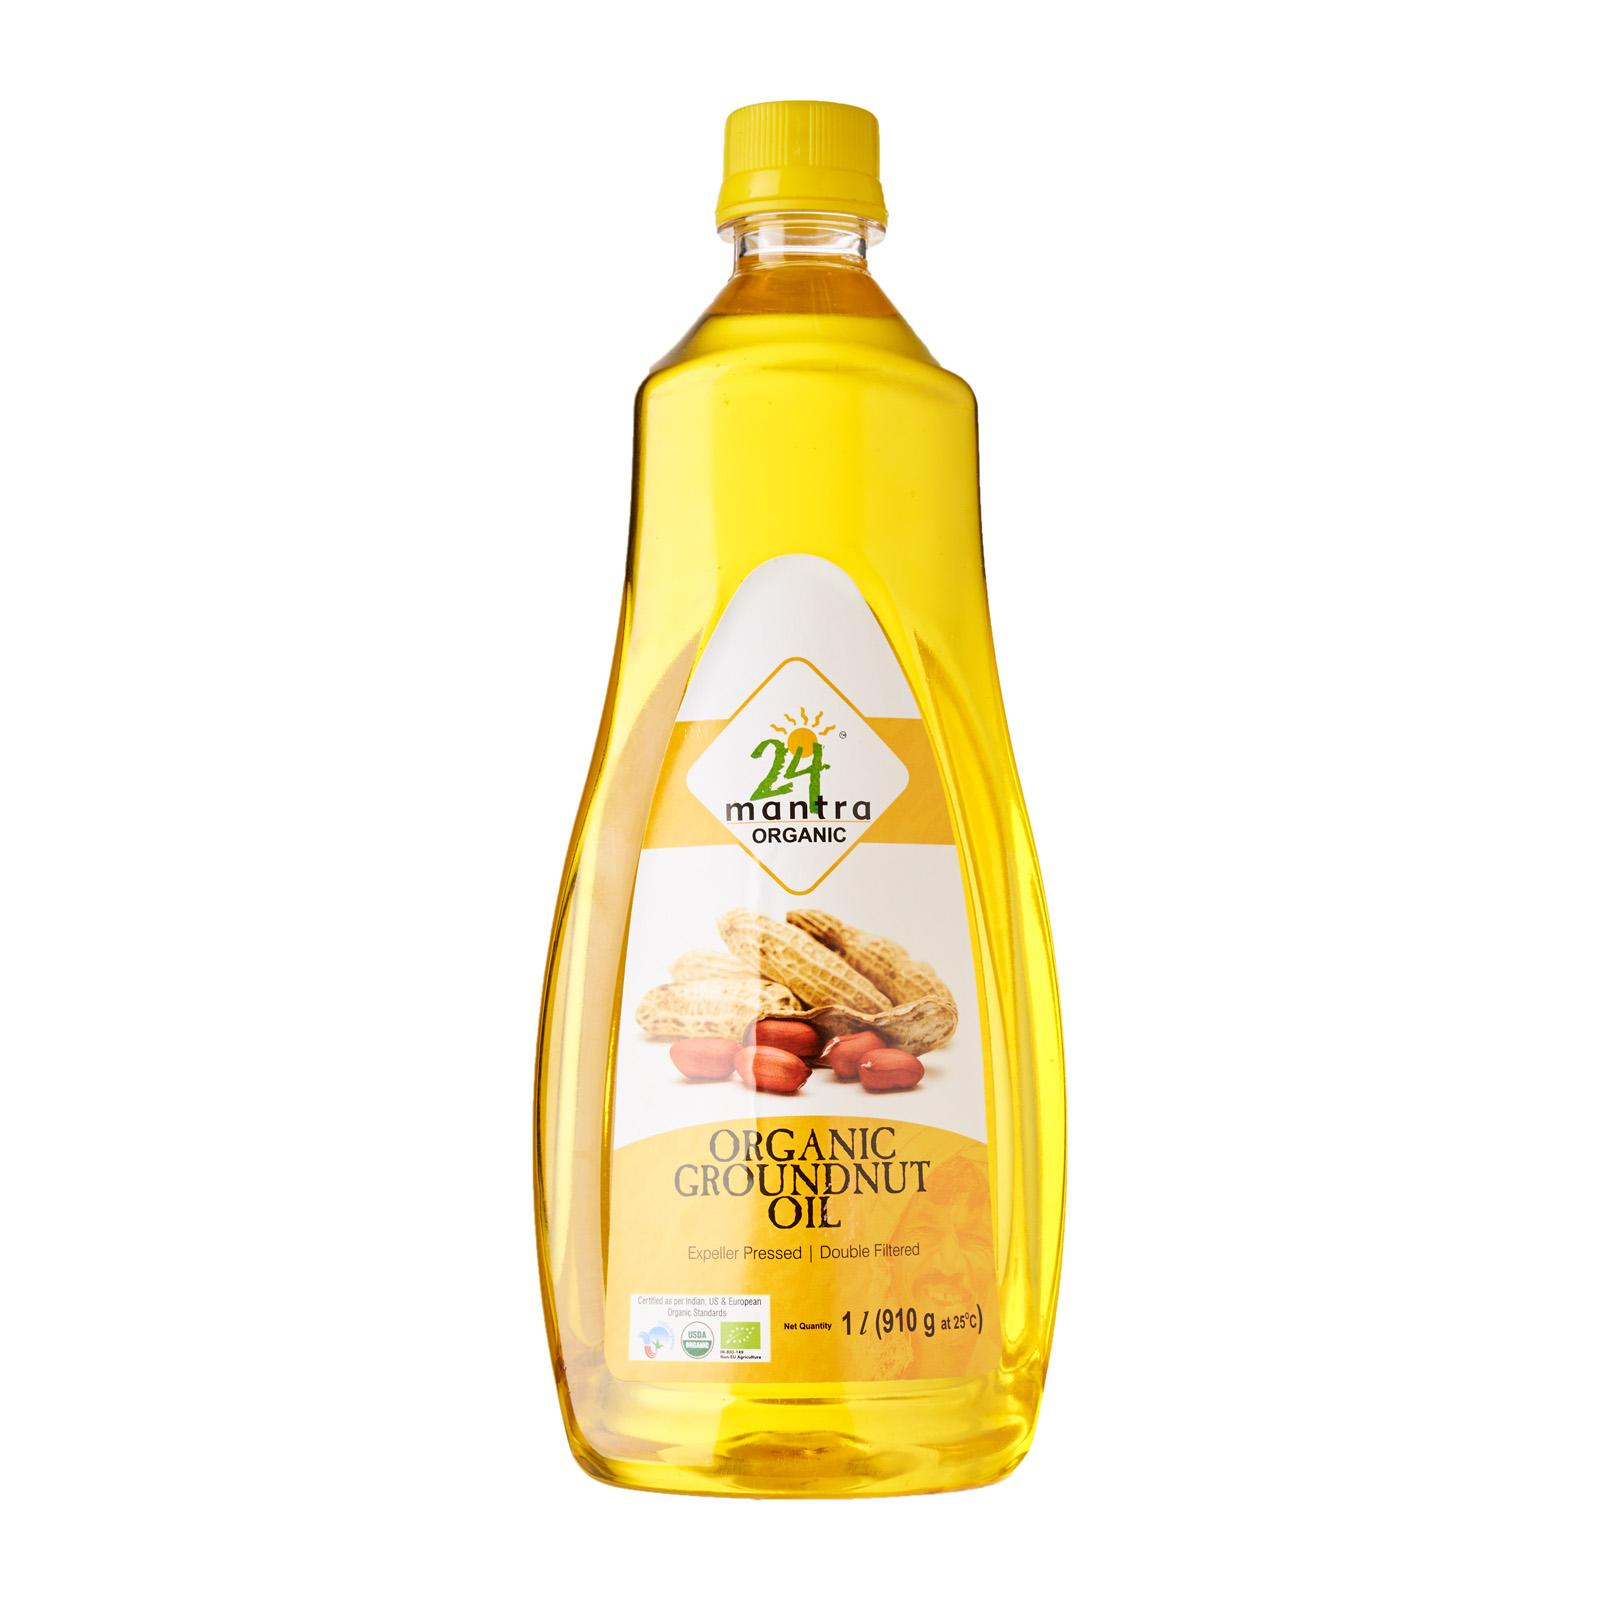 24 Mantra Groundnut Oil 1 Litre